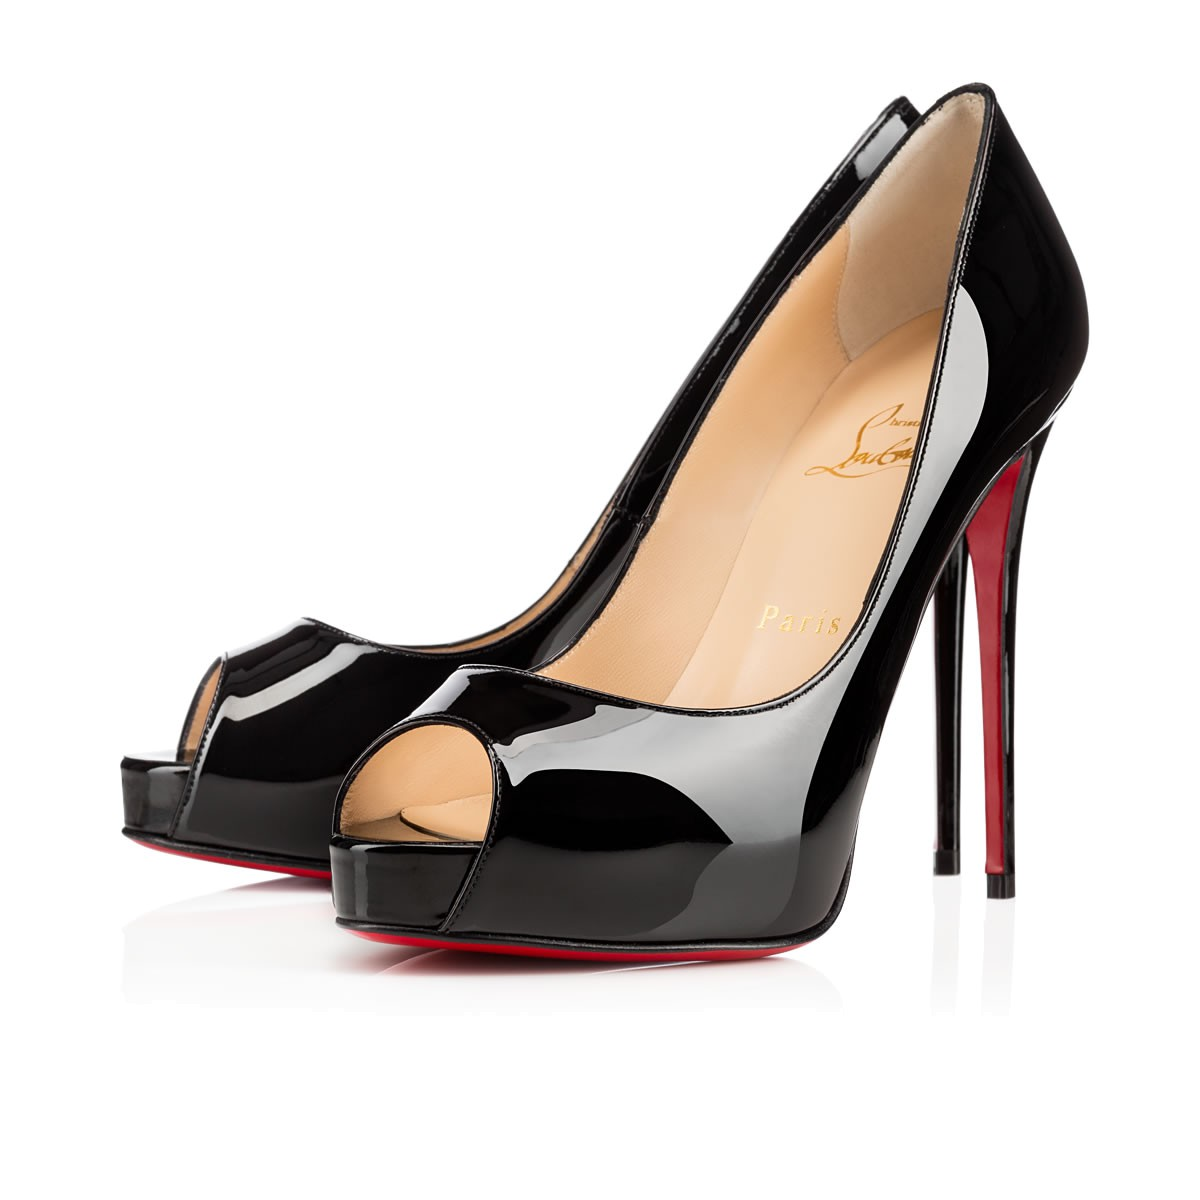 best authentic be192 b94c9 New Very Prive 120 Black Patent Leather - Women Shoes - Christian Louboutin